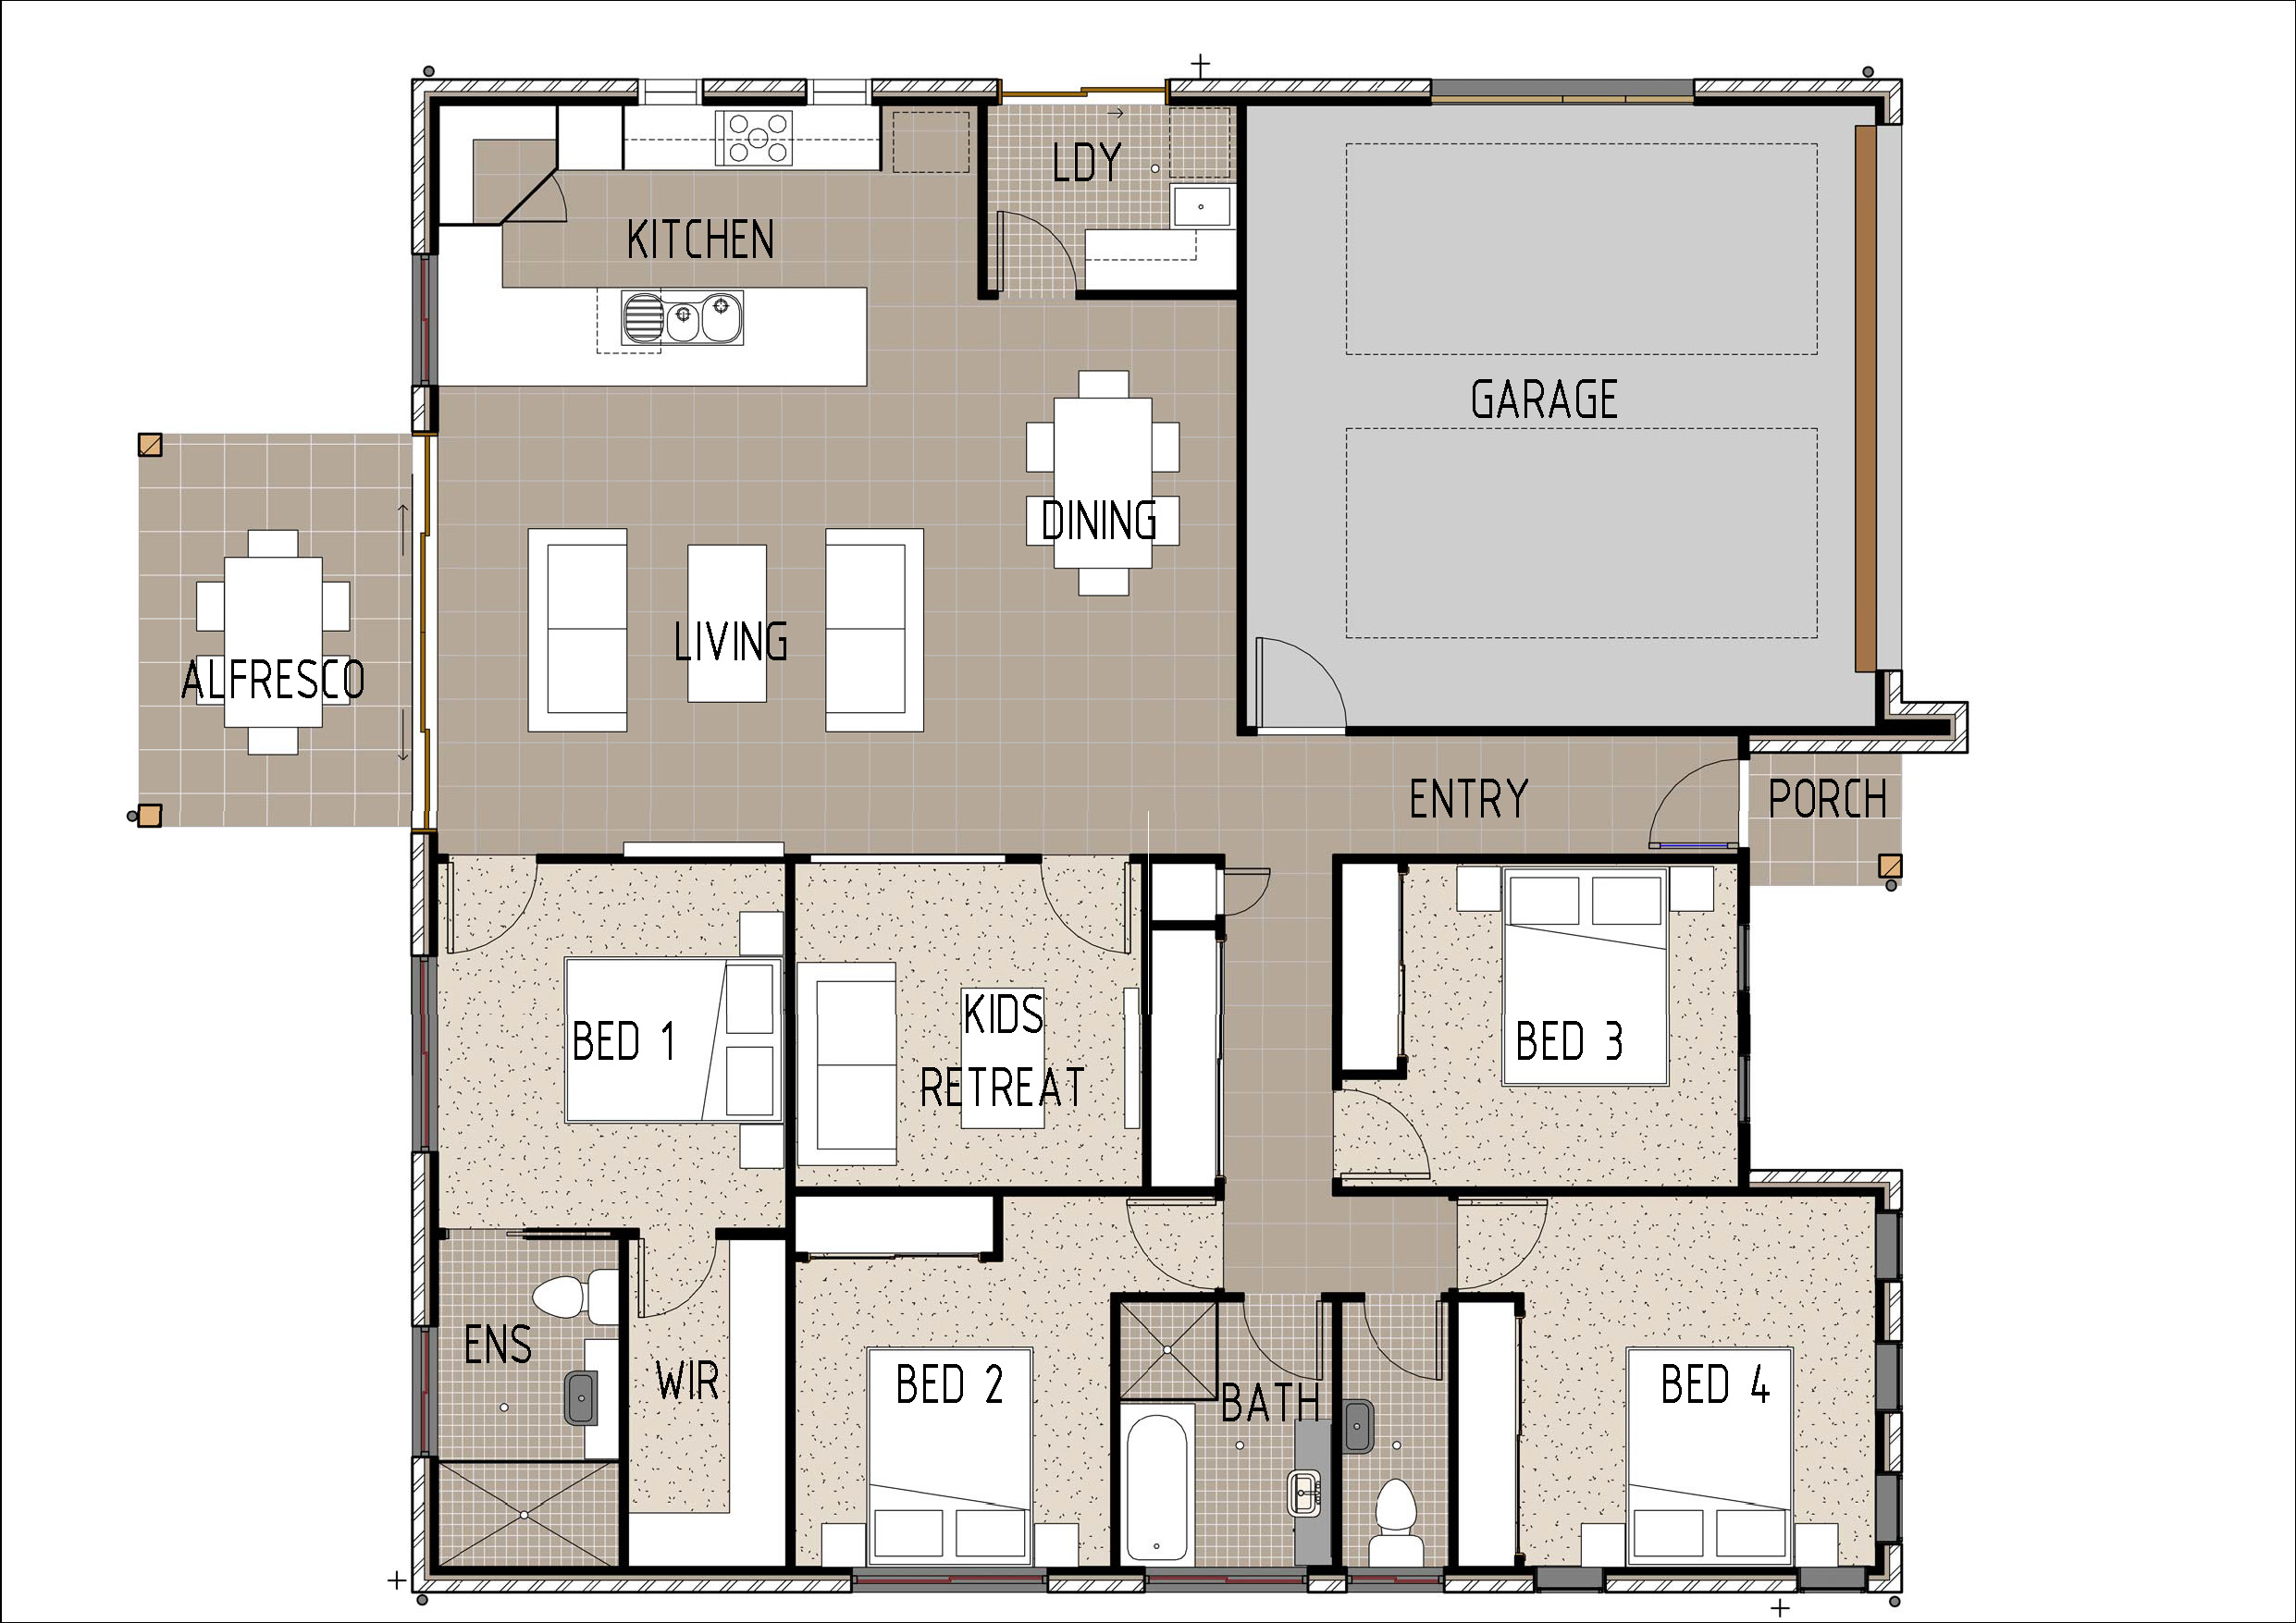 T4002 - GROUND FLOOR PLAN - COLOUR.jpg